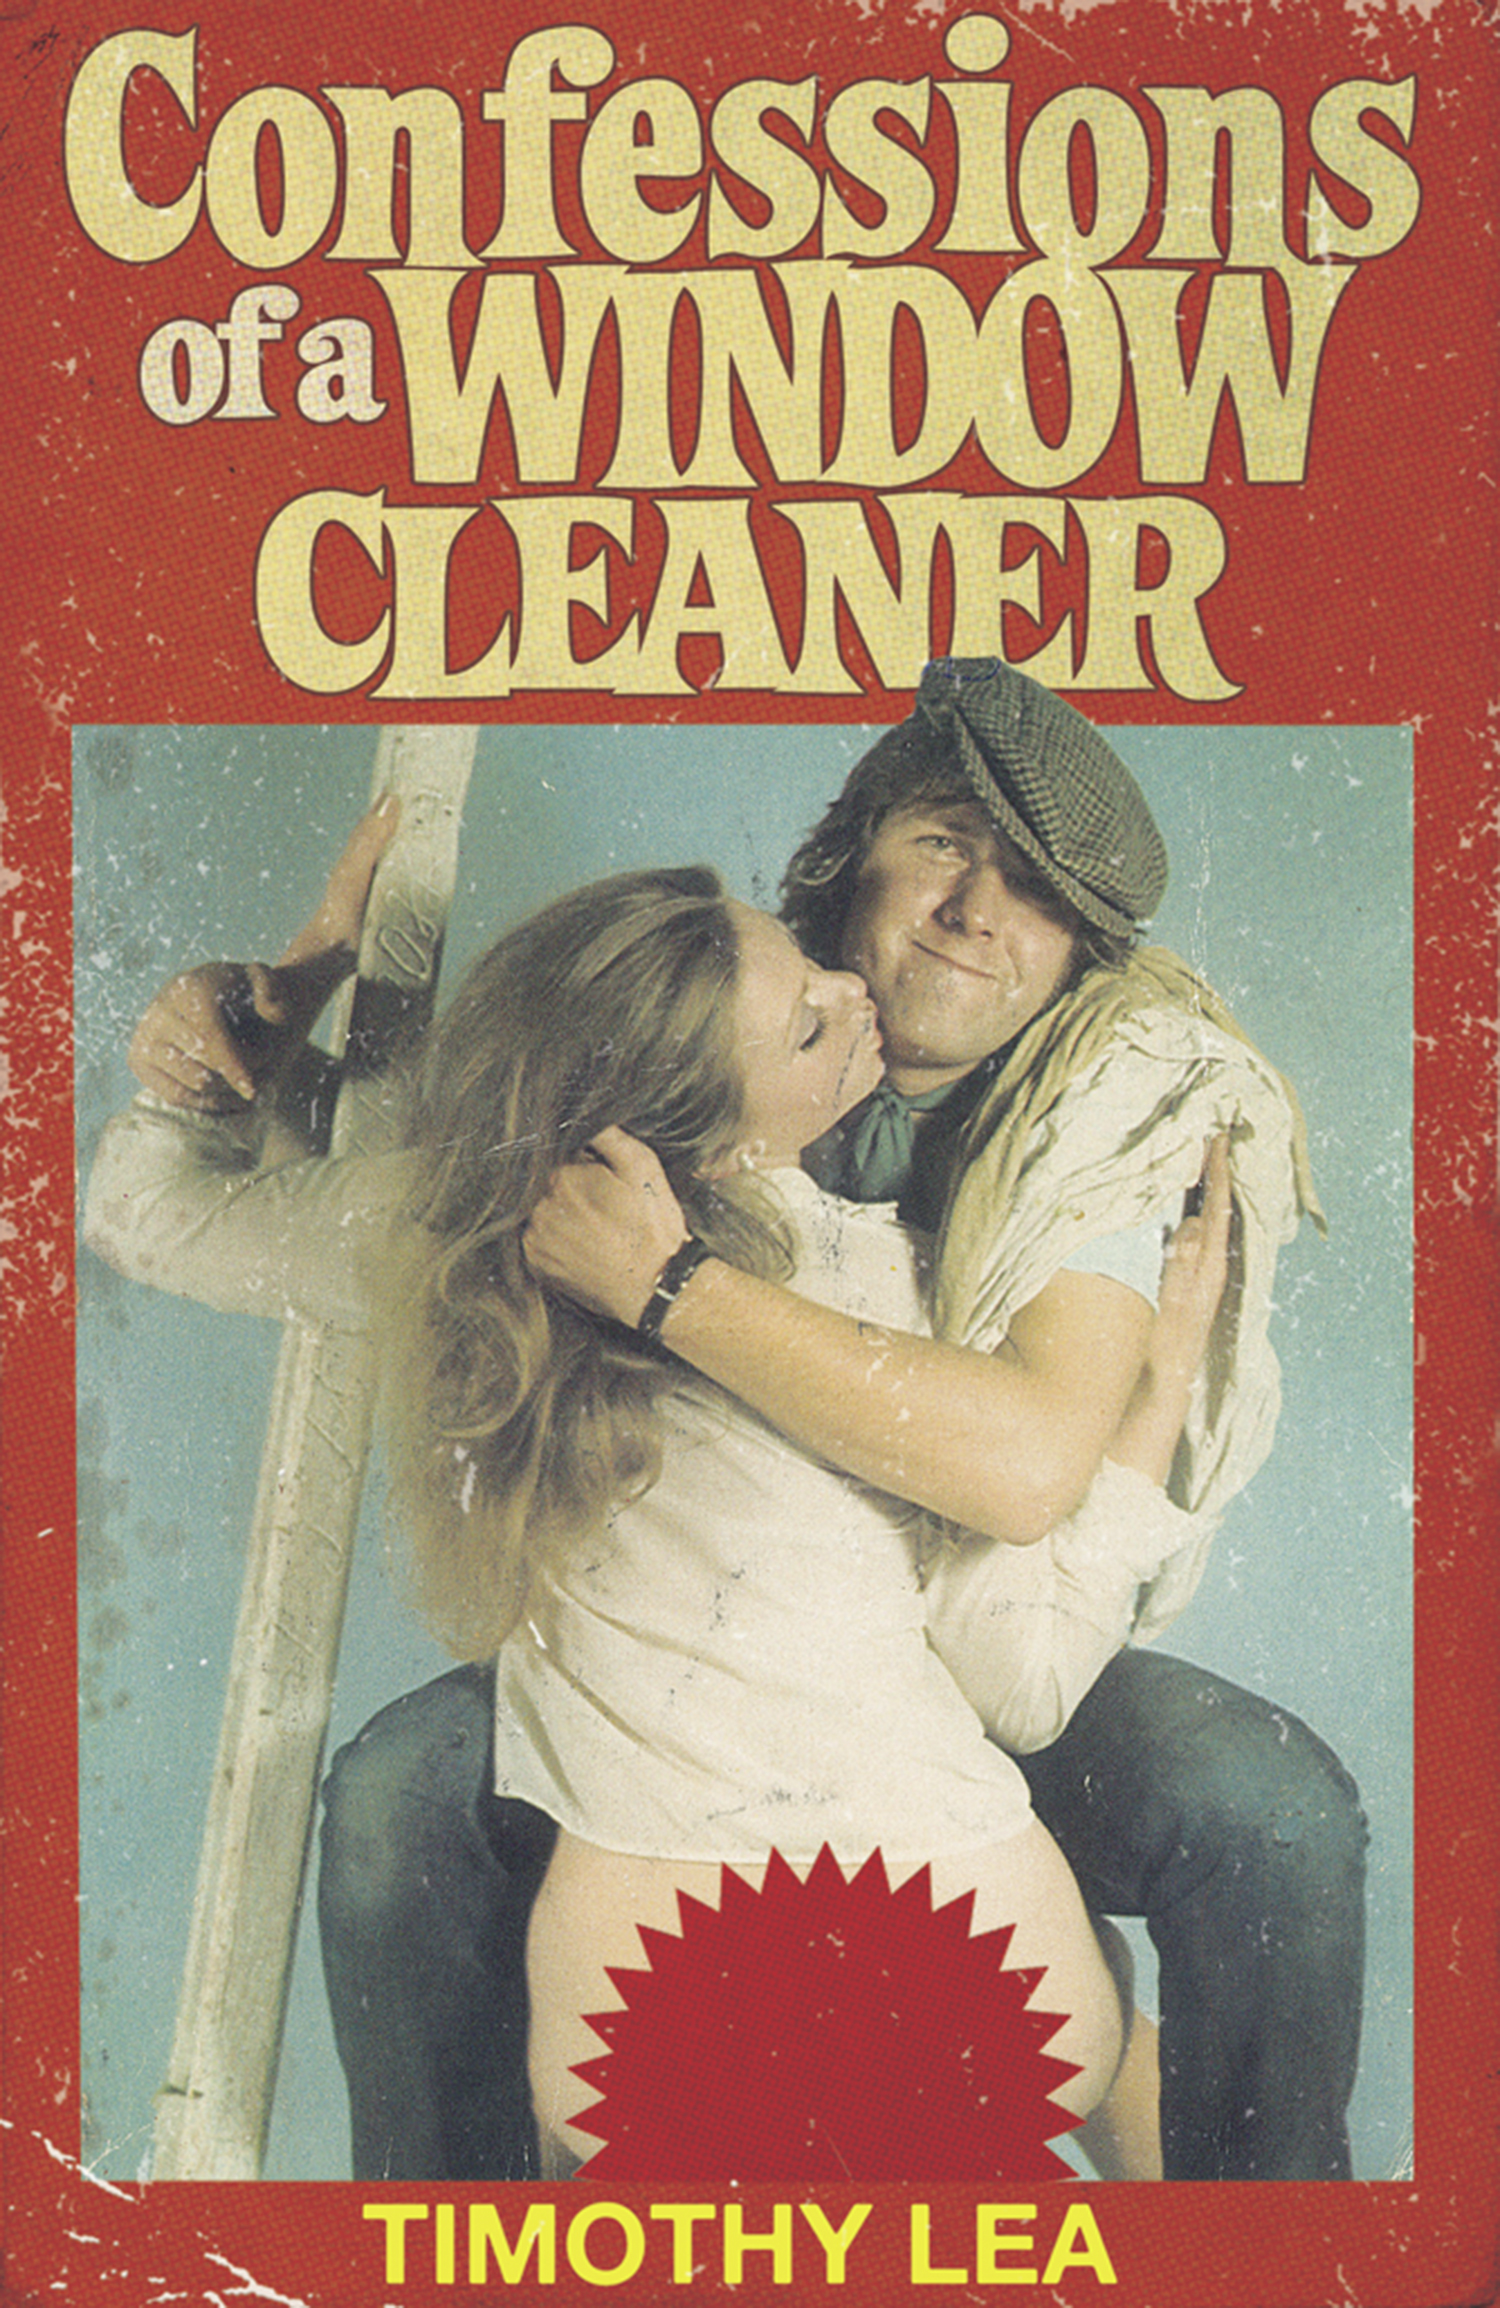 Confessions of a Window Cleaner (Confessions, Book 1)